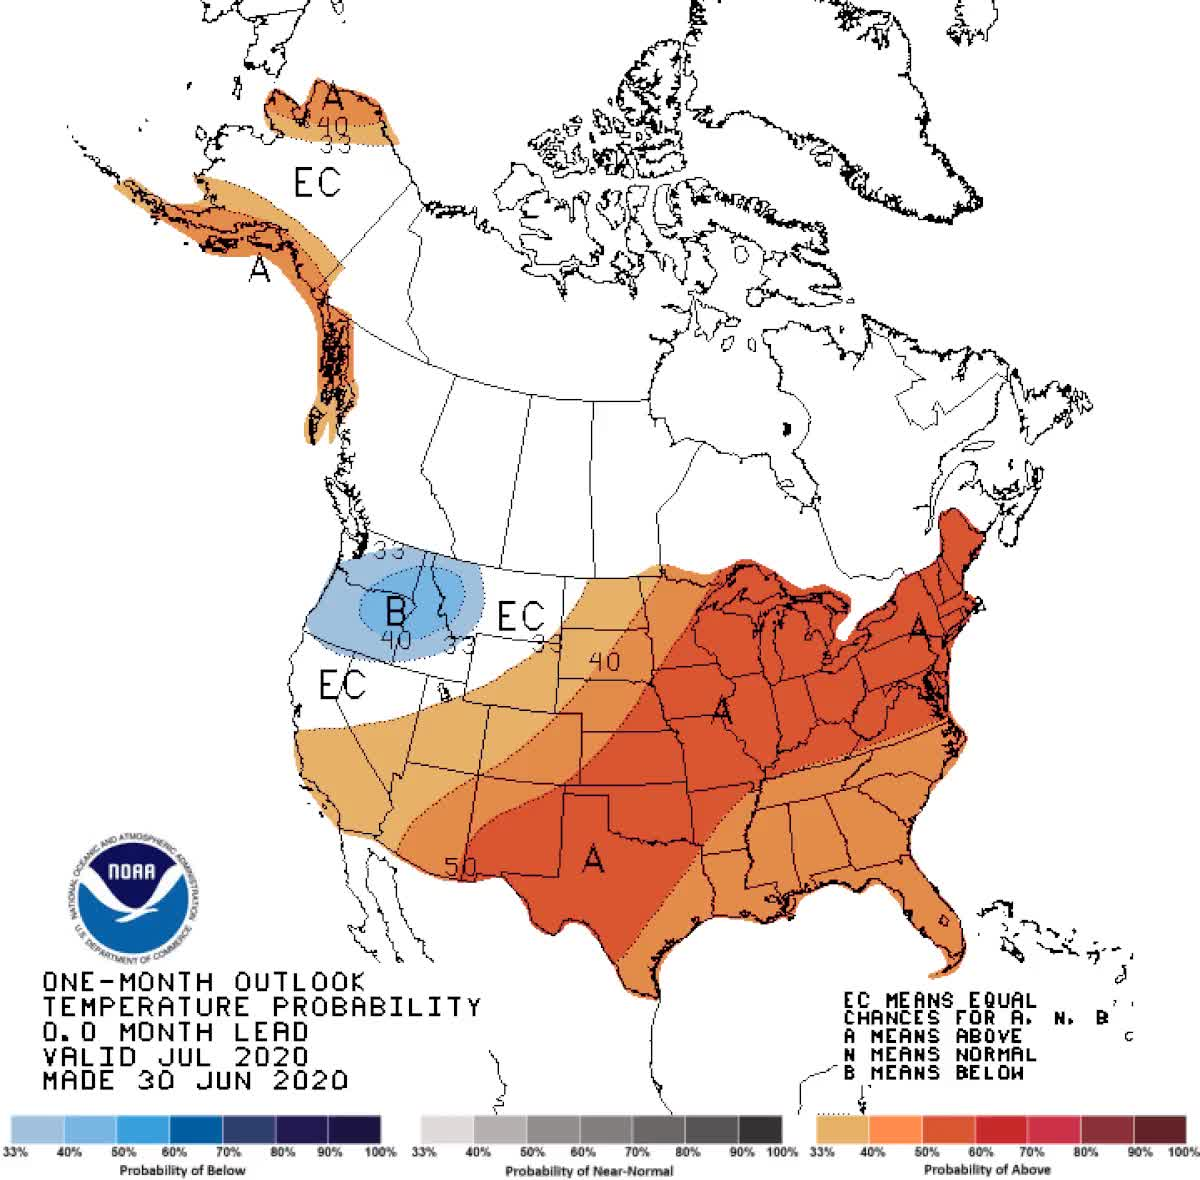 Hellish 2020 to get even hotter with 'potentially historic' heat wave in July, meteorologists warn